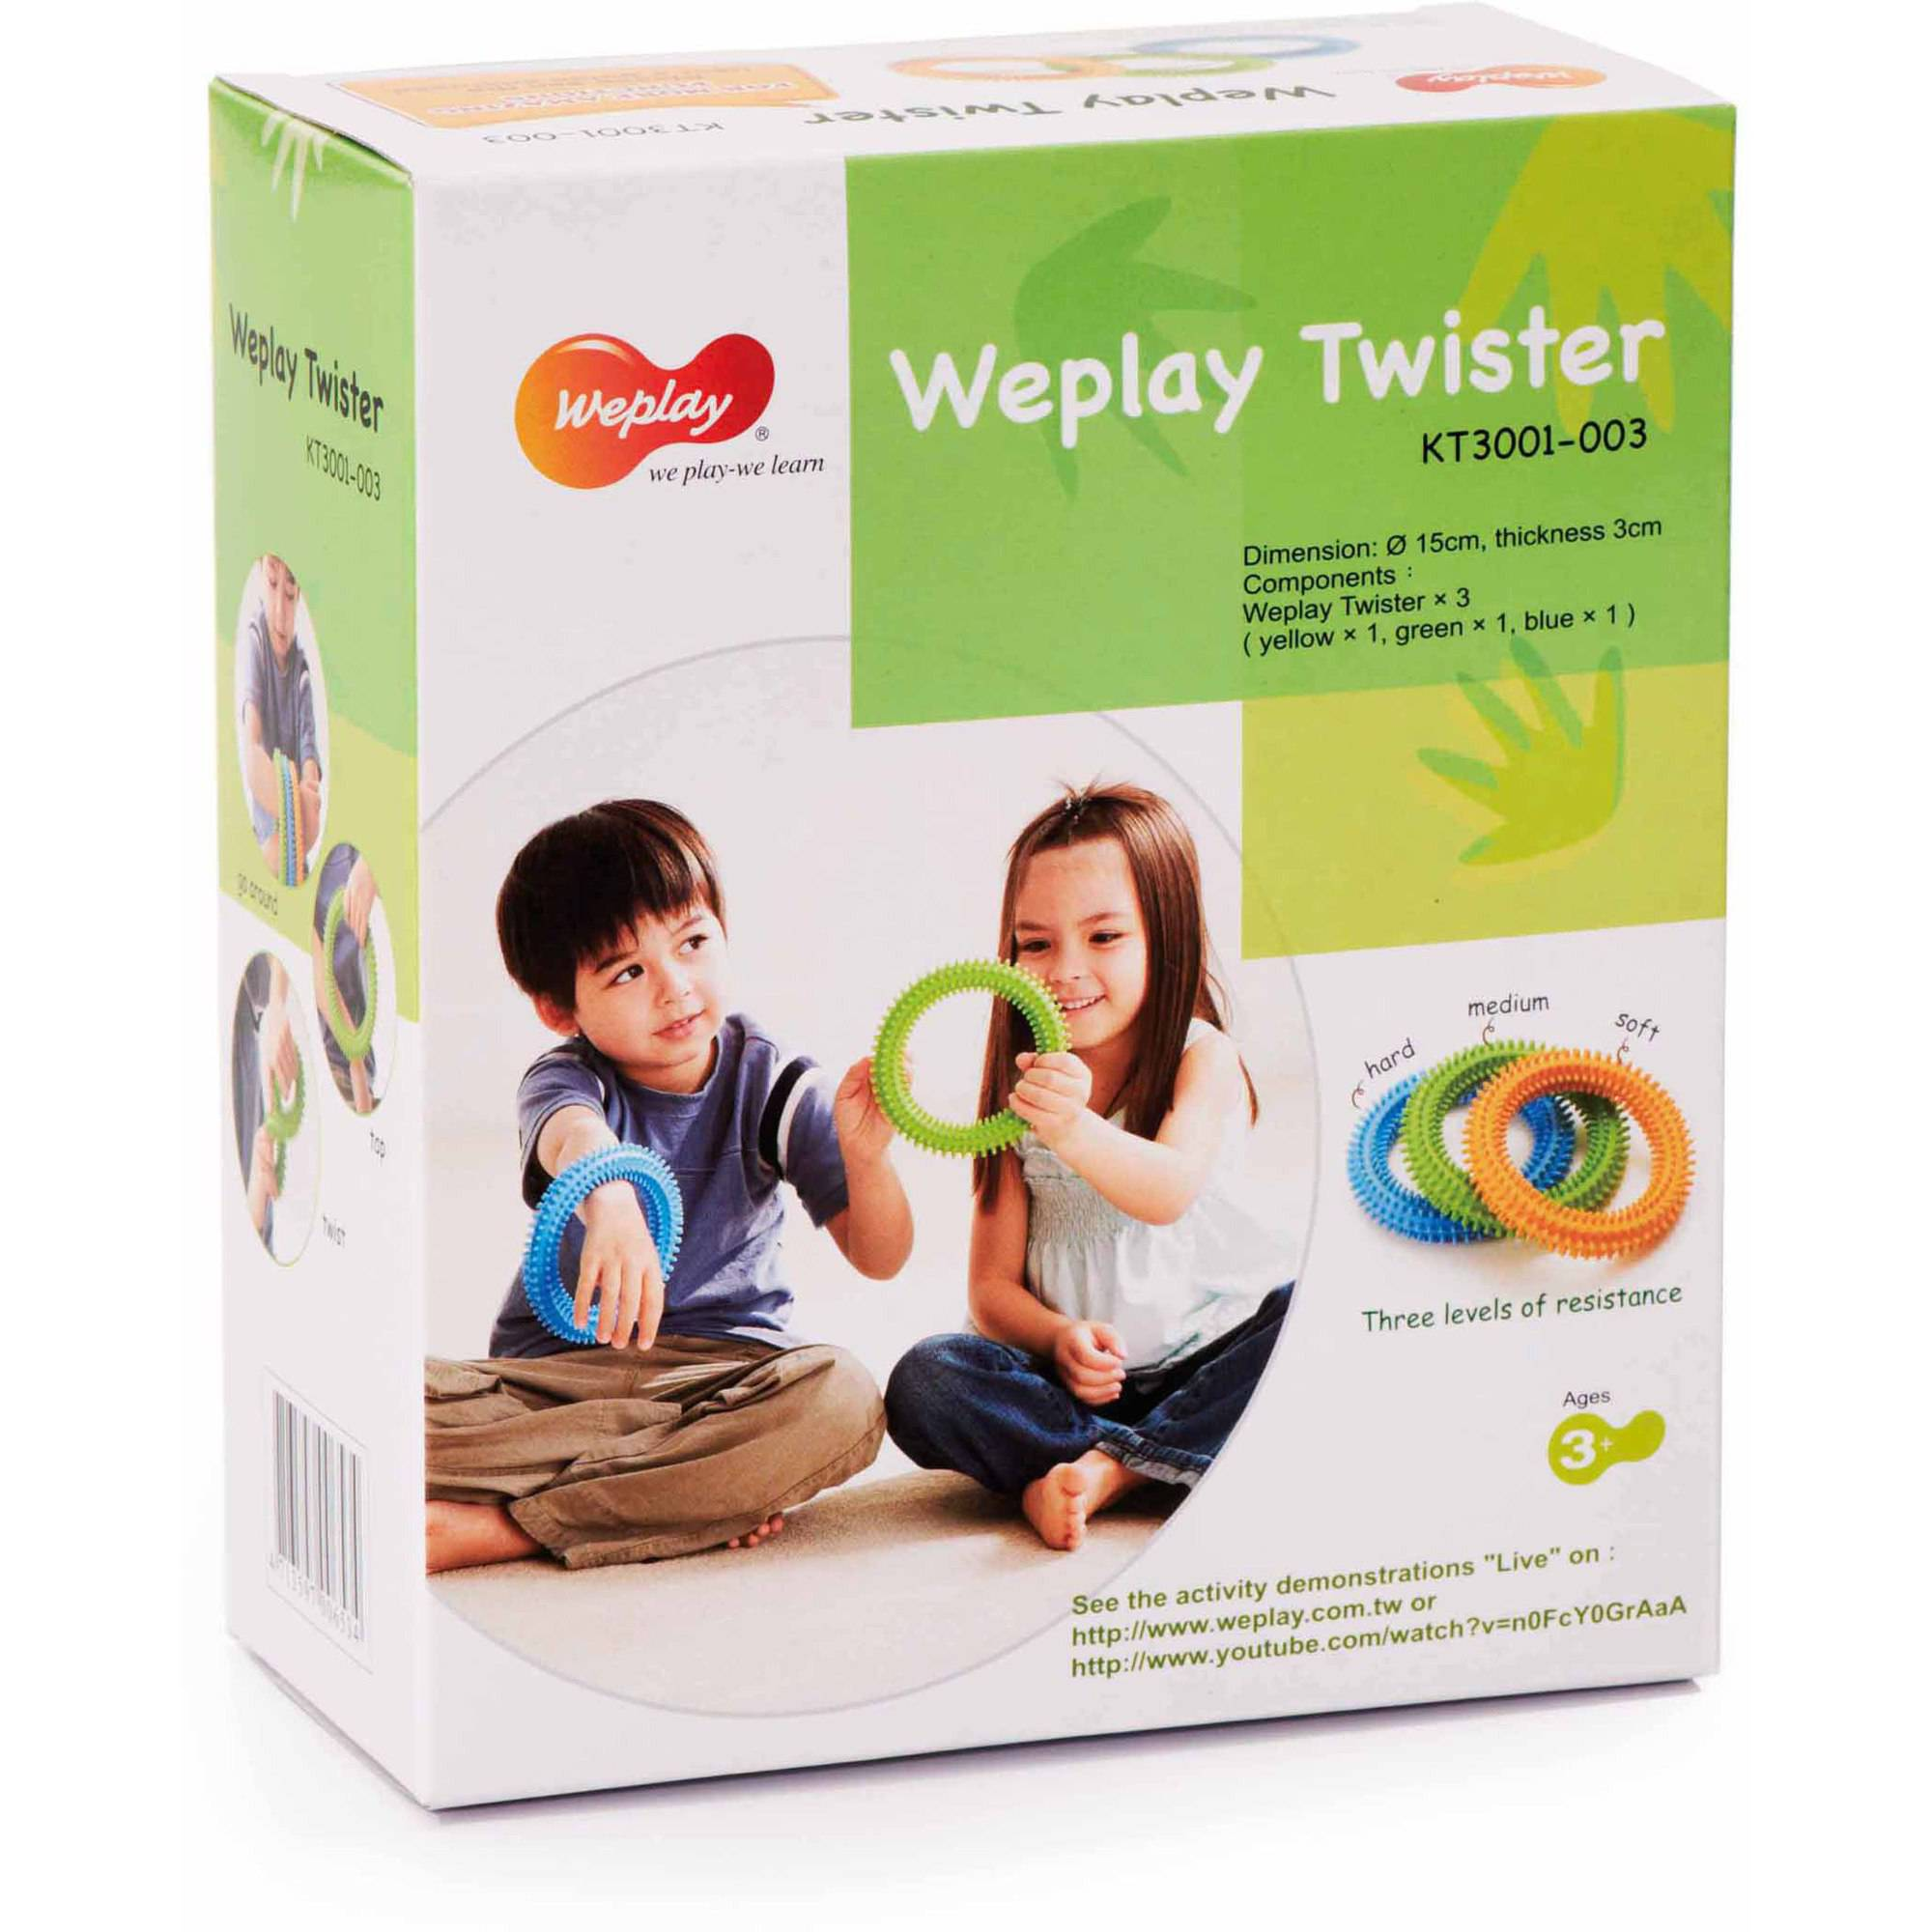 Weplay Twister